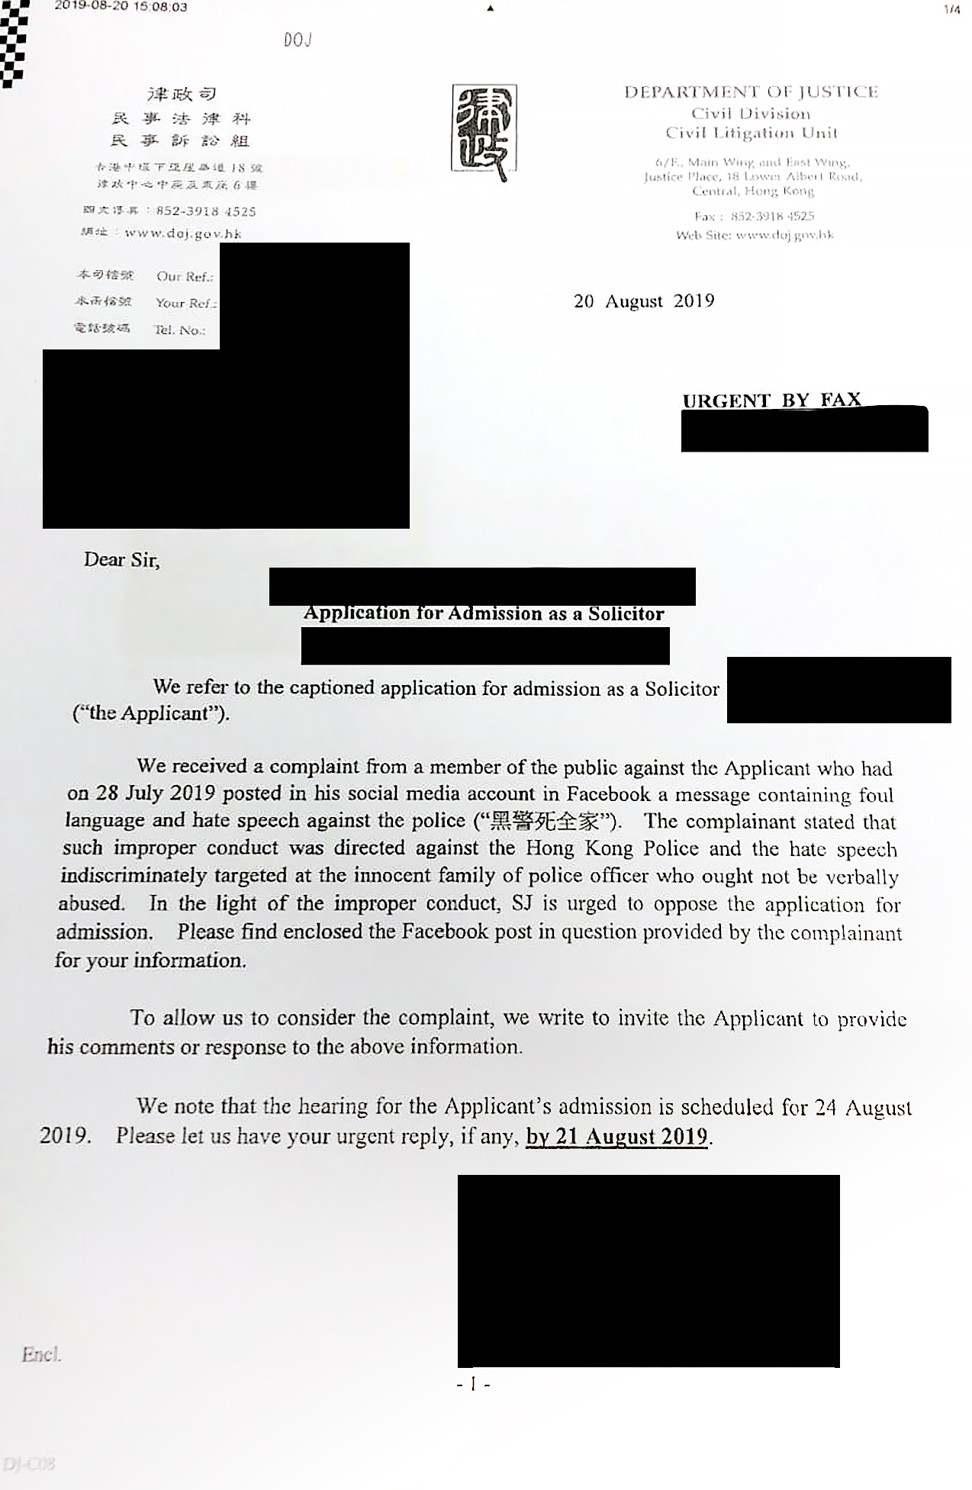 A redacted letter from the Secretary for Justice raised concerns over the application of a solicitor trainee. Photo: Handout